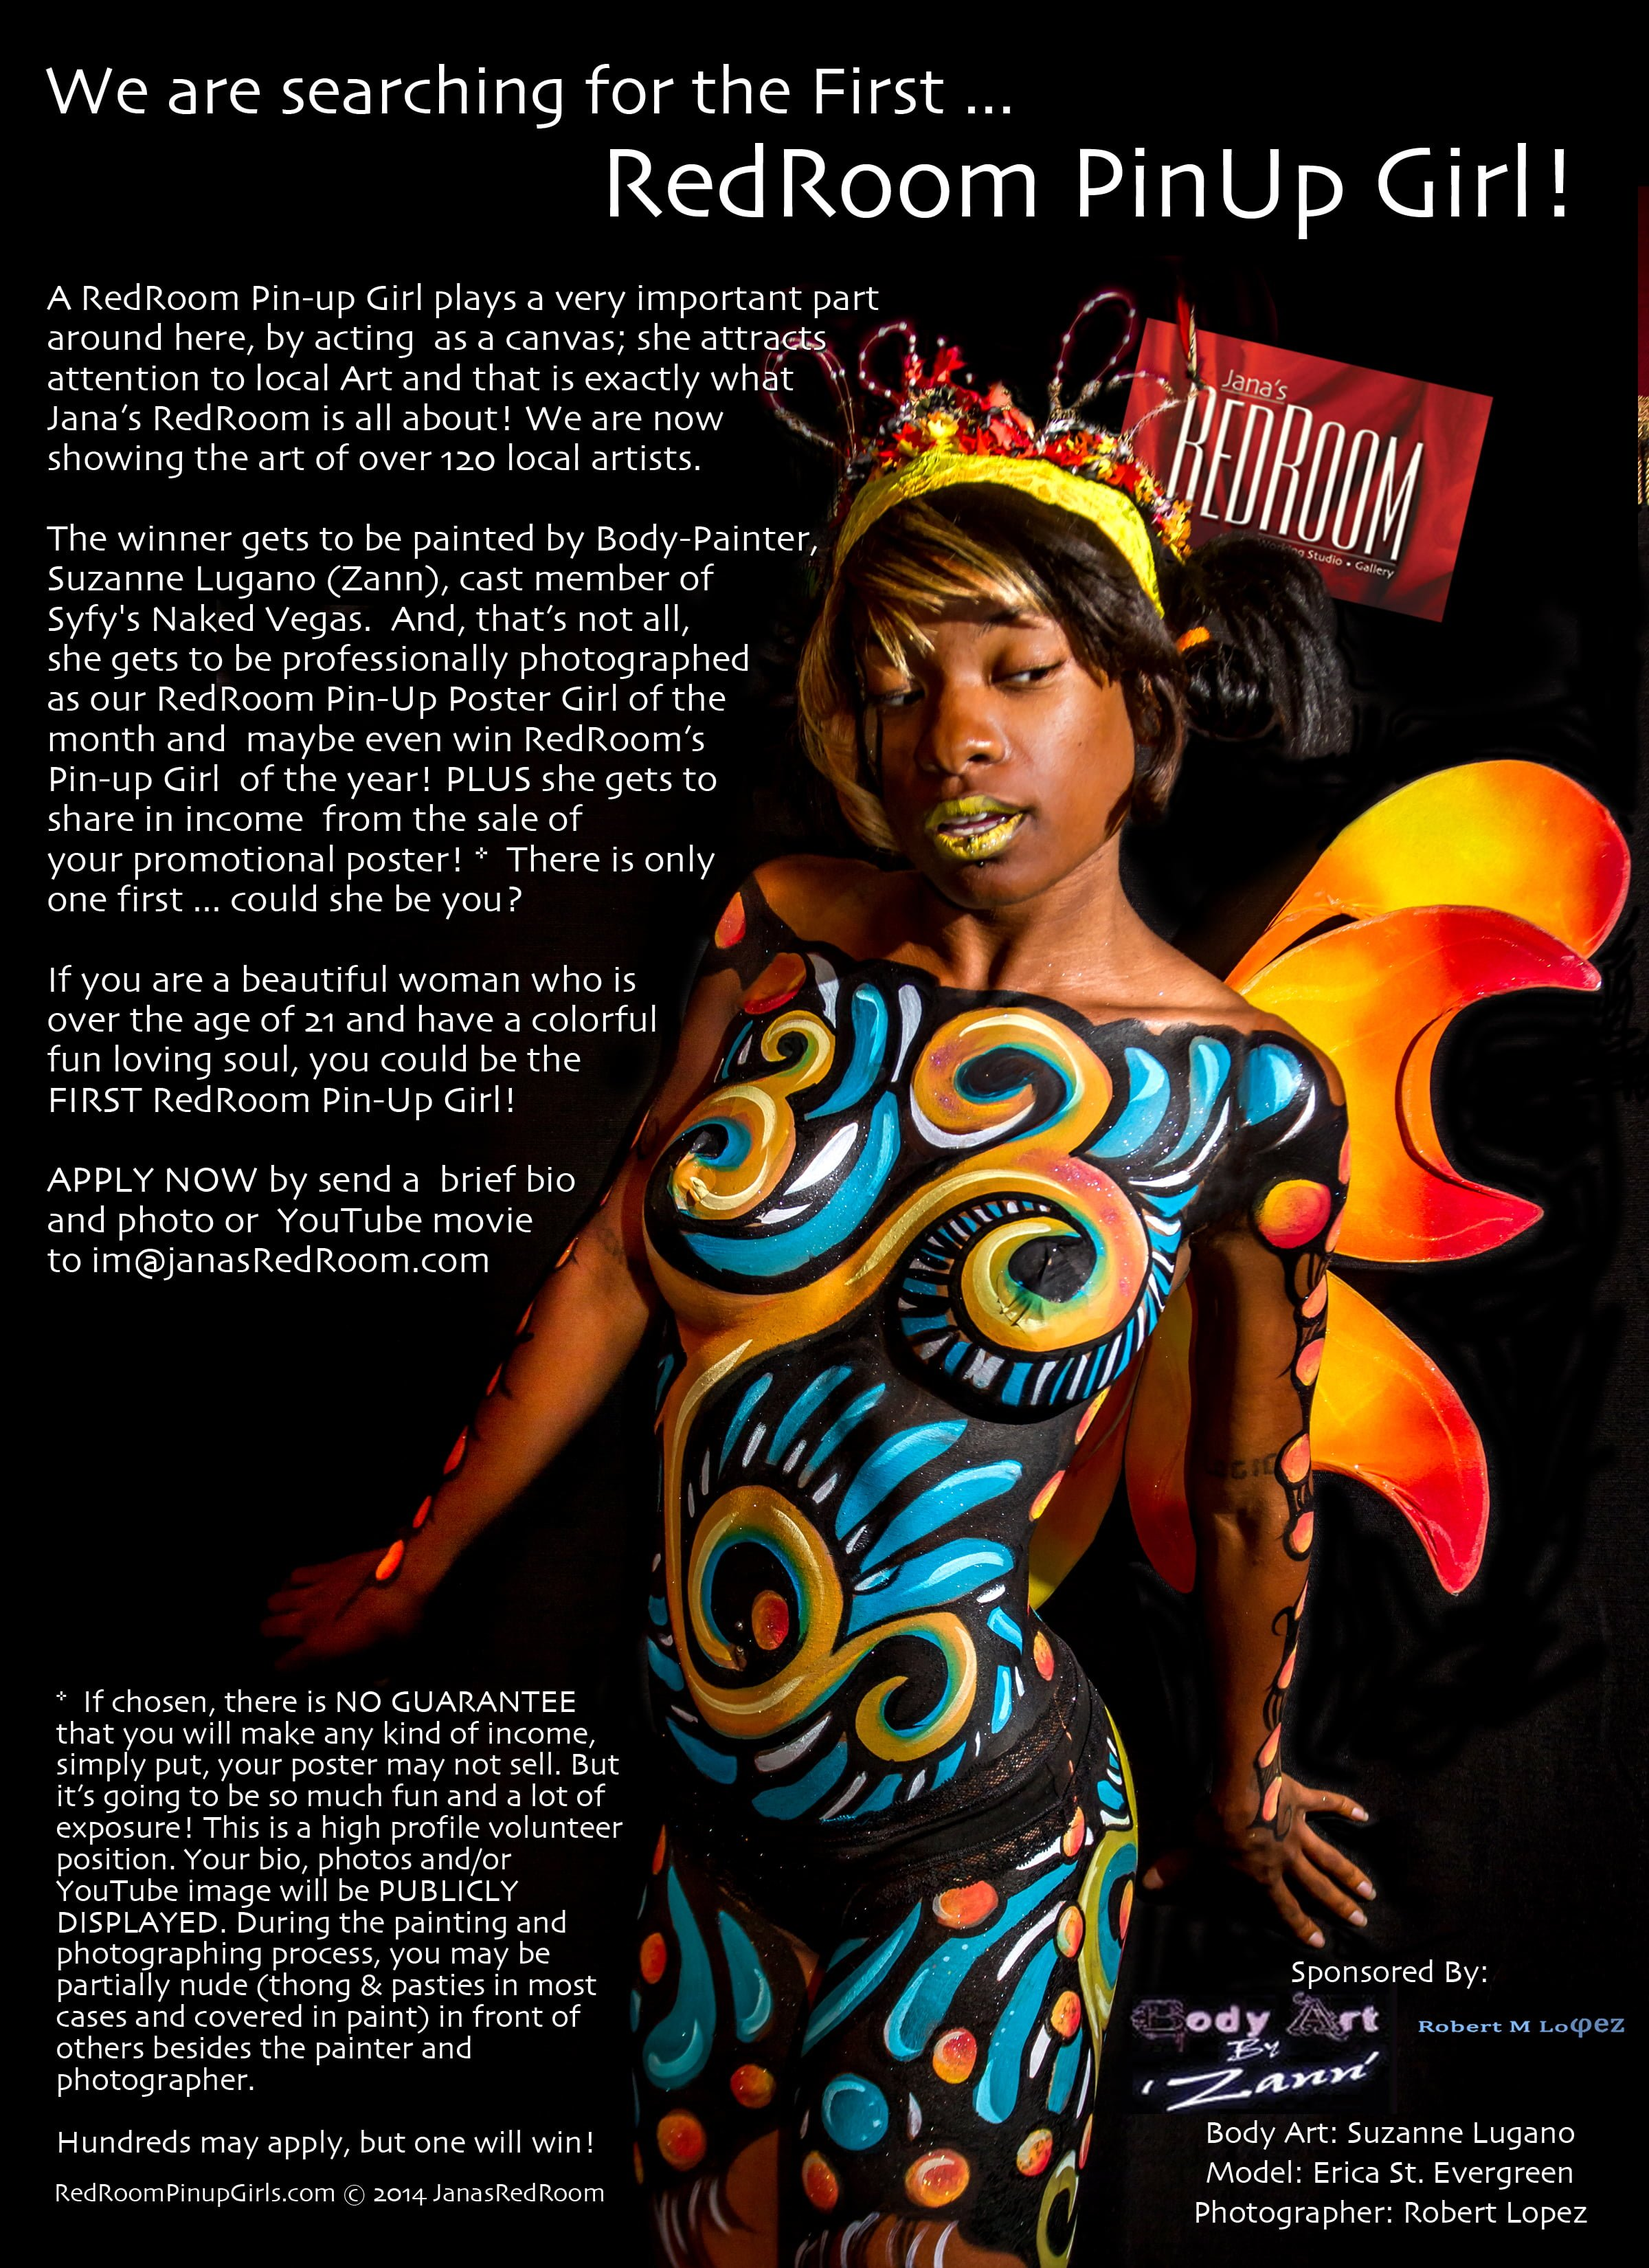 Wanna be body painted? Apply TODAY!!